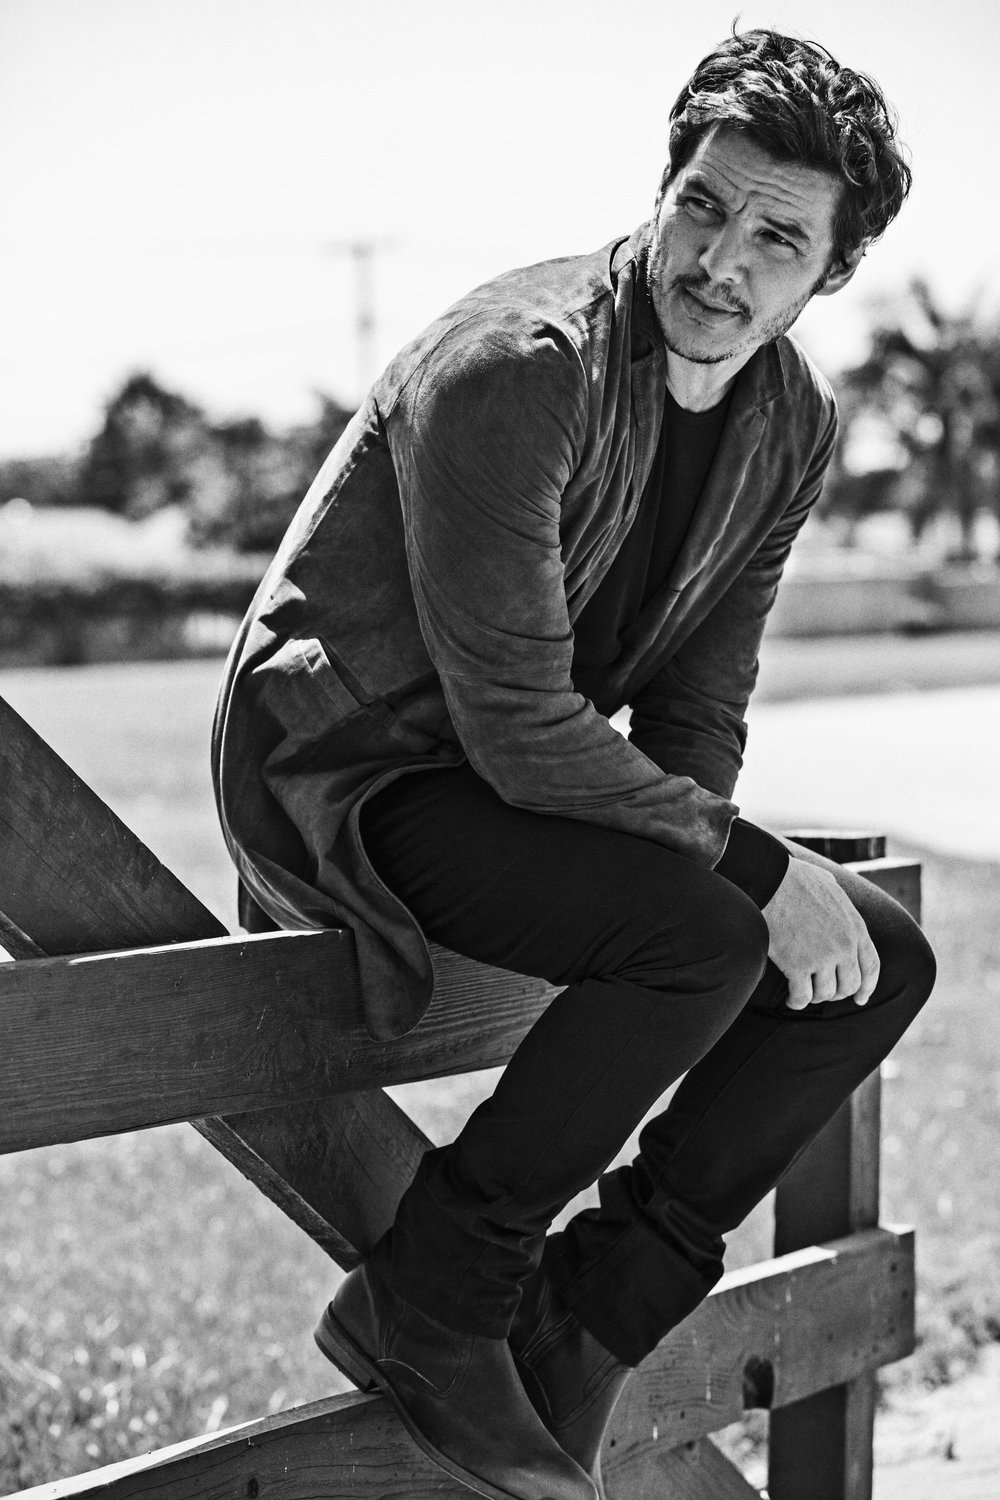 Pedro Pascal / So it goes